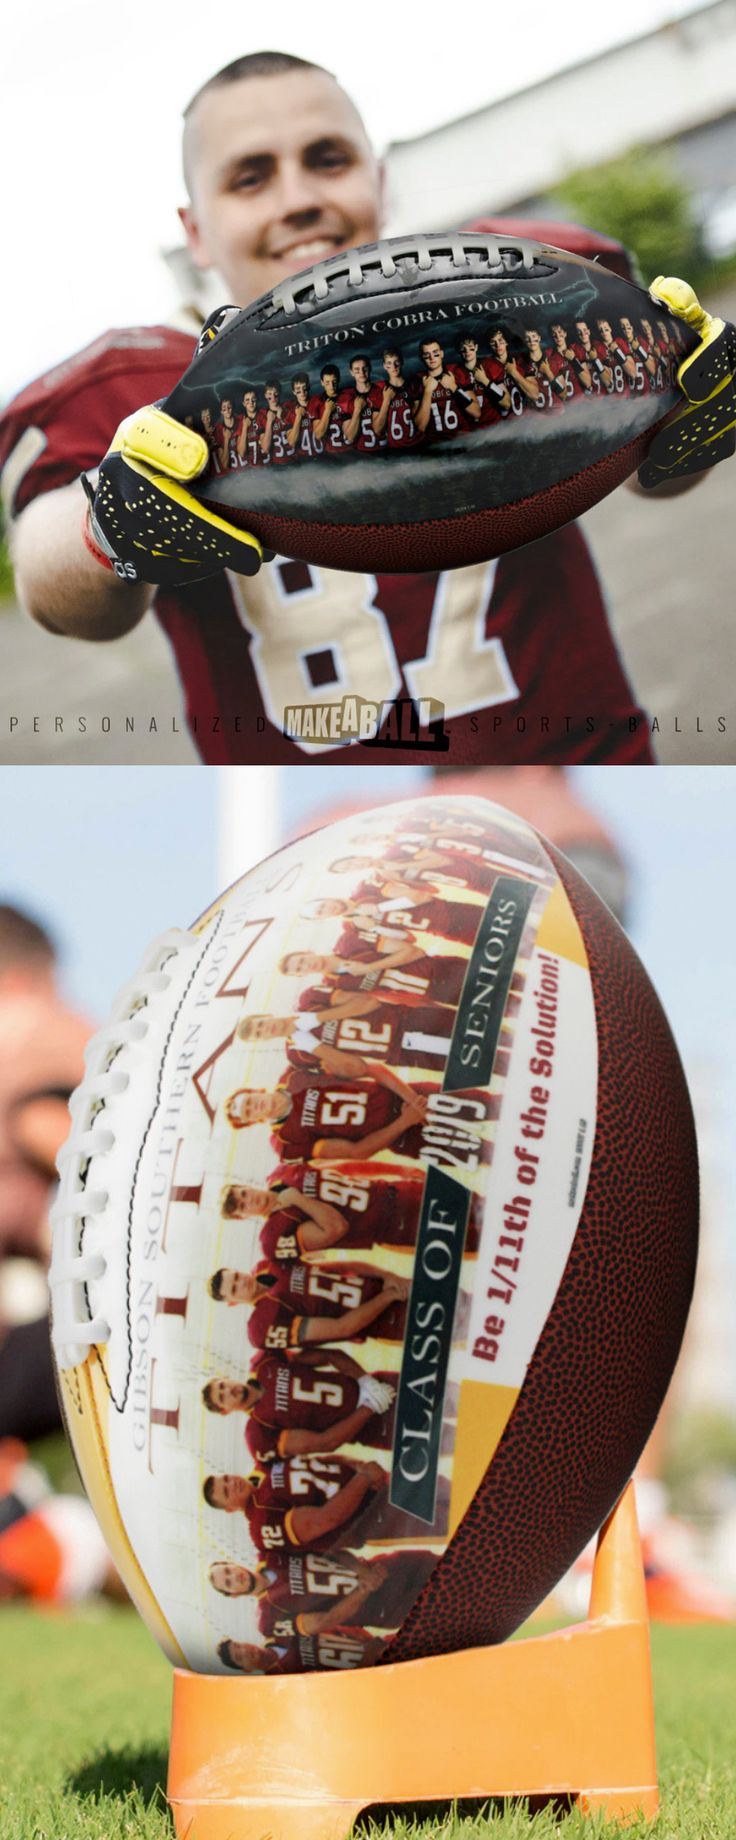 Design your own football with personal photos, text, and graphics. The panel that contains the design has a full, smooth and glossy finish. They make …